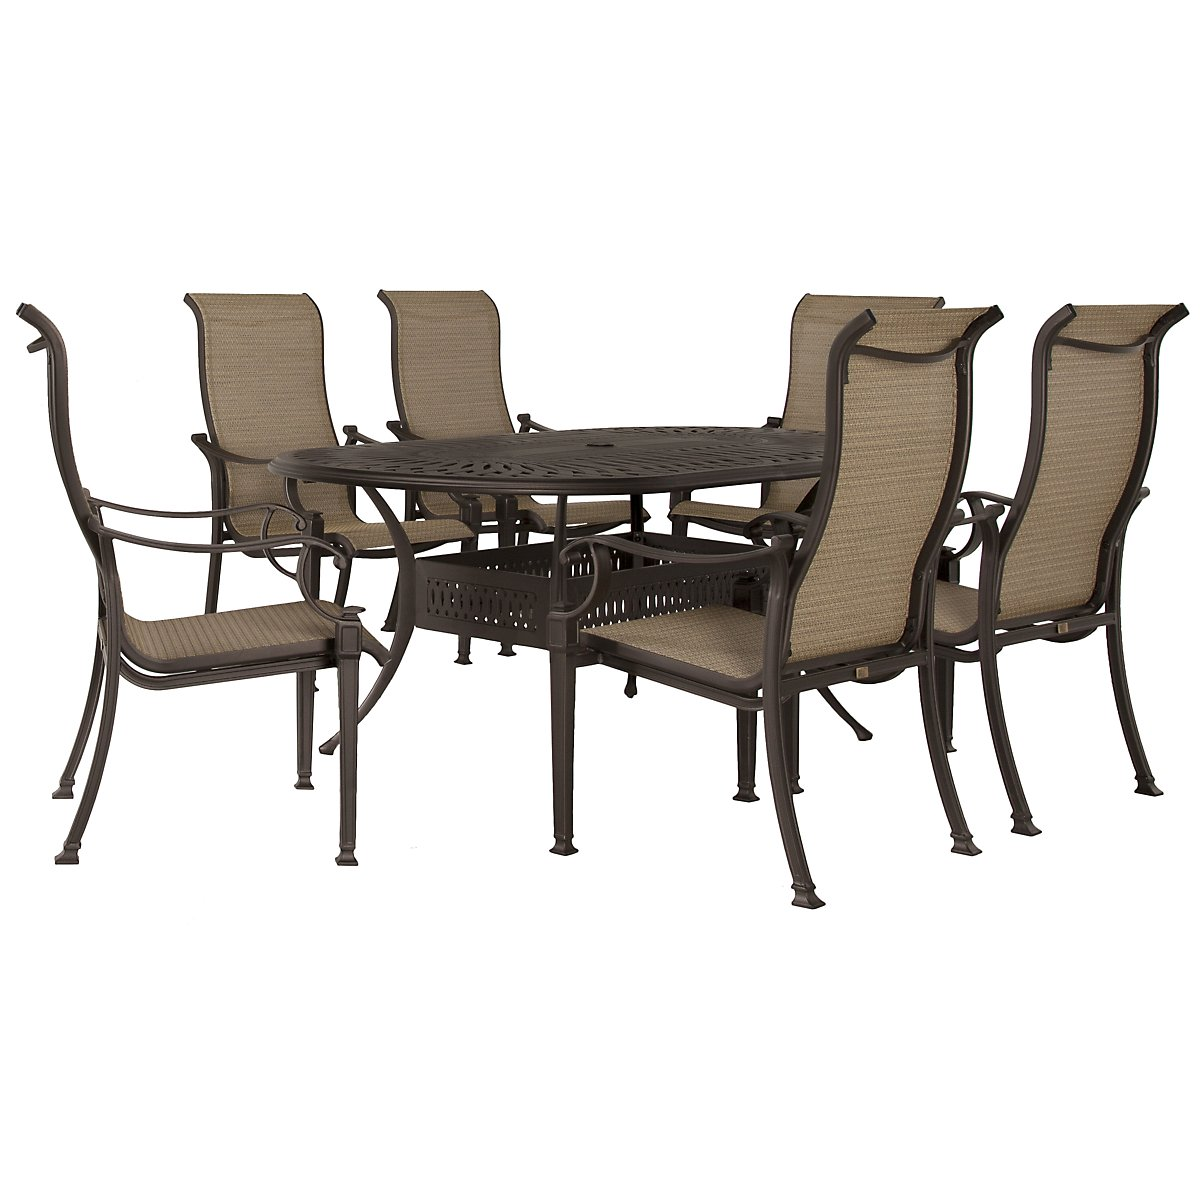 "Primera Dark Tone 72"" Oval Table & 4 Sling Chairs"